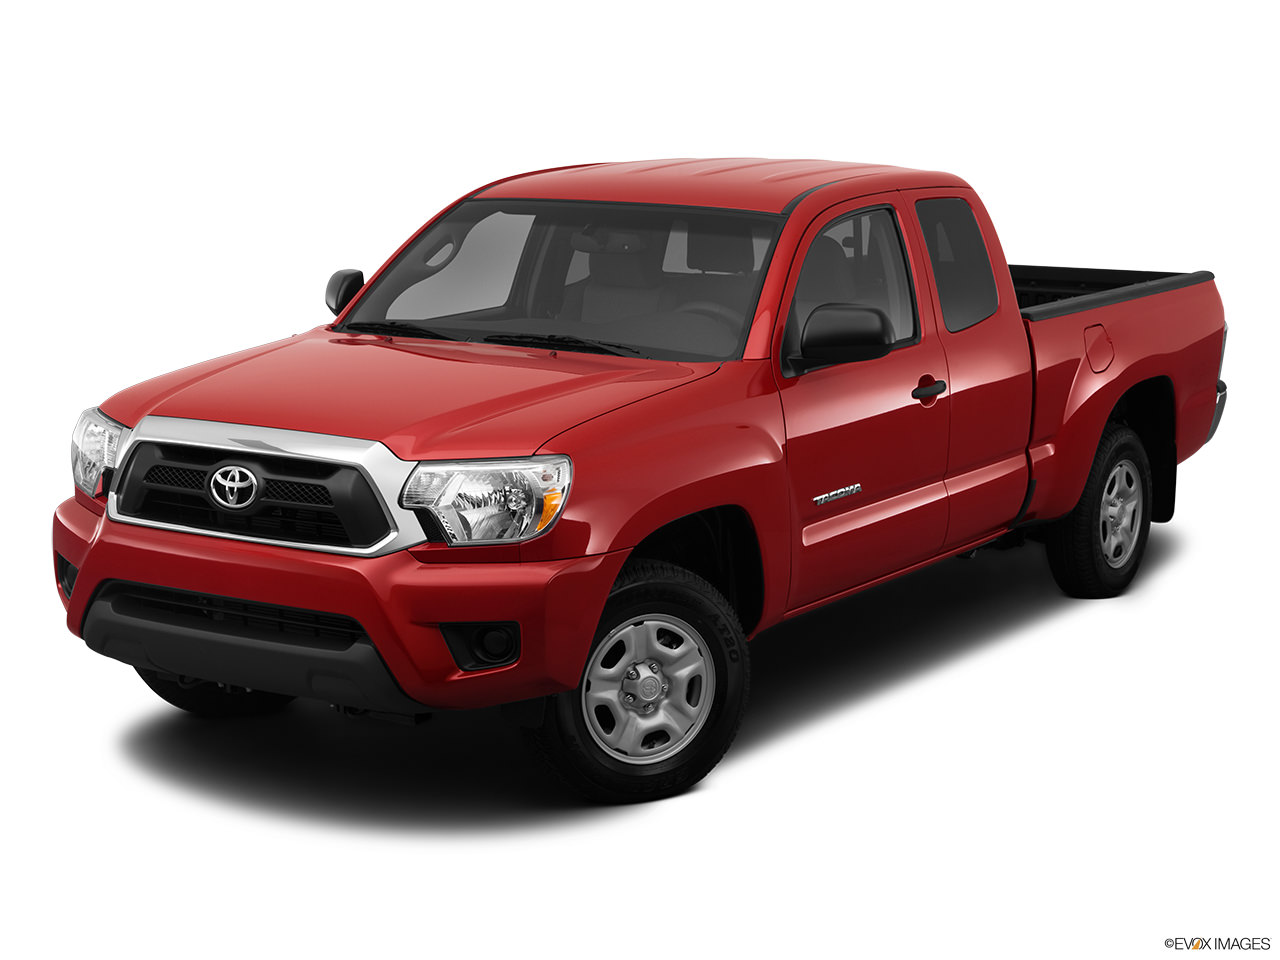 2012 toyota tacoma vs 2012 nissan frontier which one should i buy yourmechanic advice. Black Bedroom Furniture Sets. Home Design Ideas